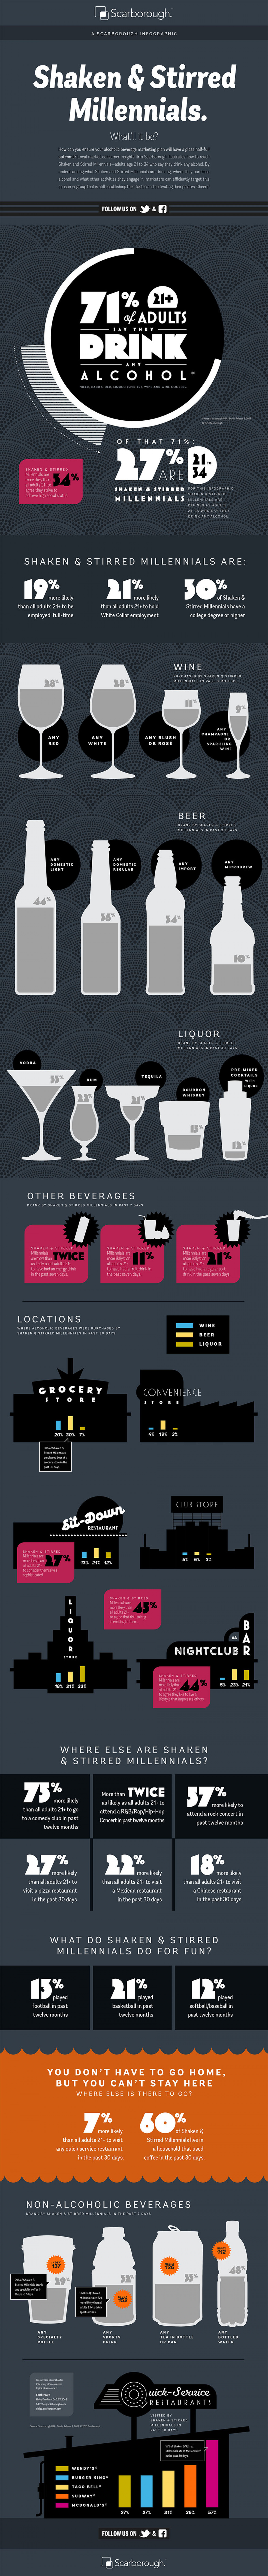 Scarborough Shaken & Stirred Millennials Infographic